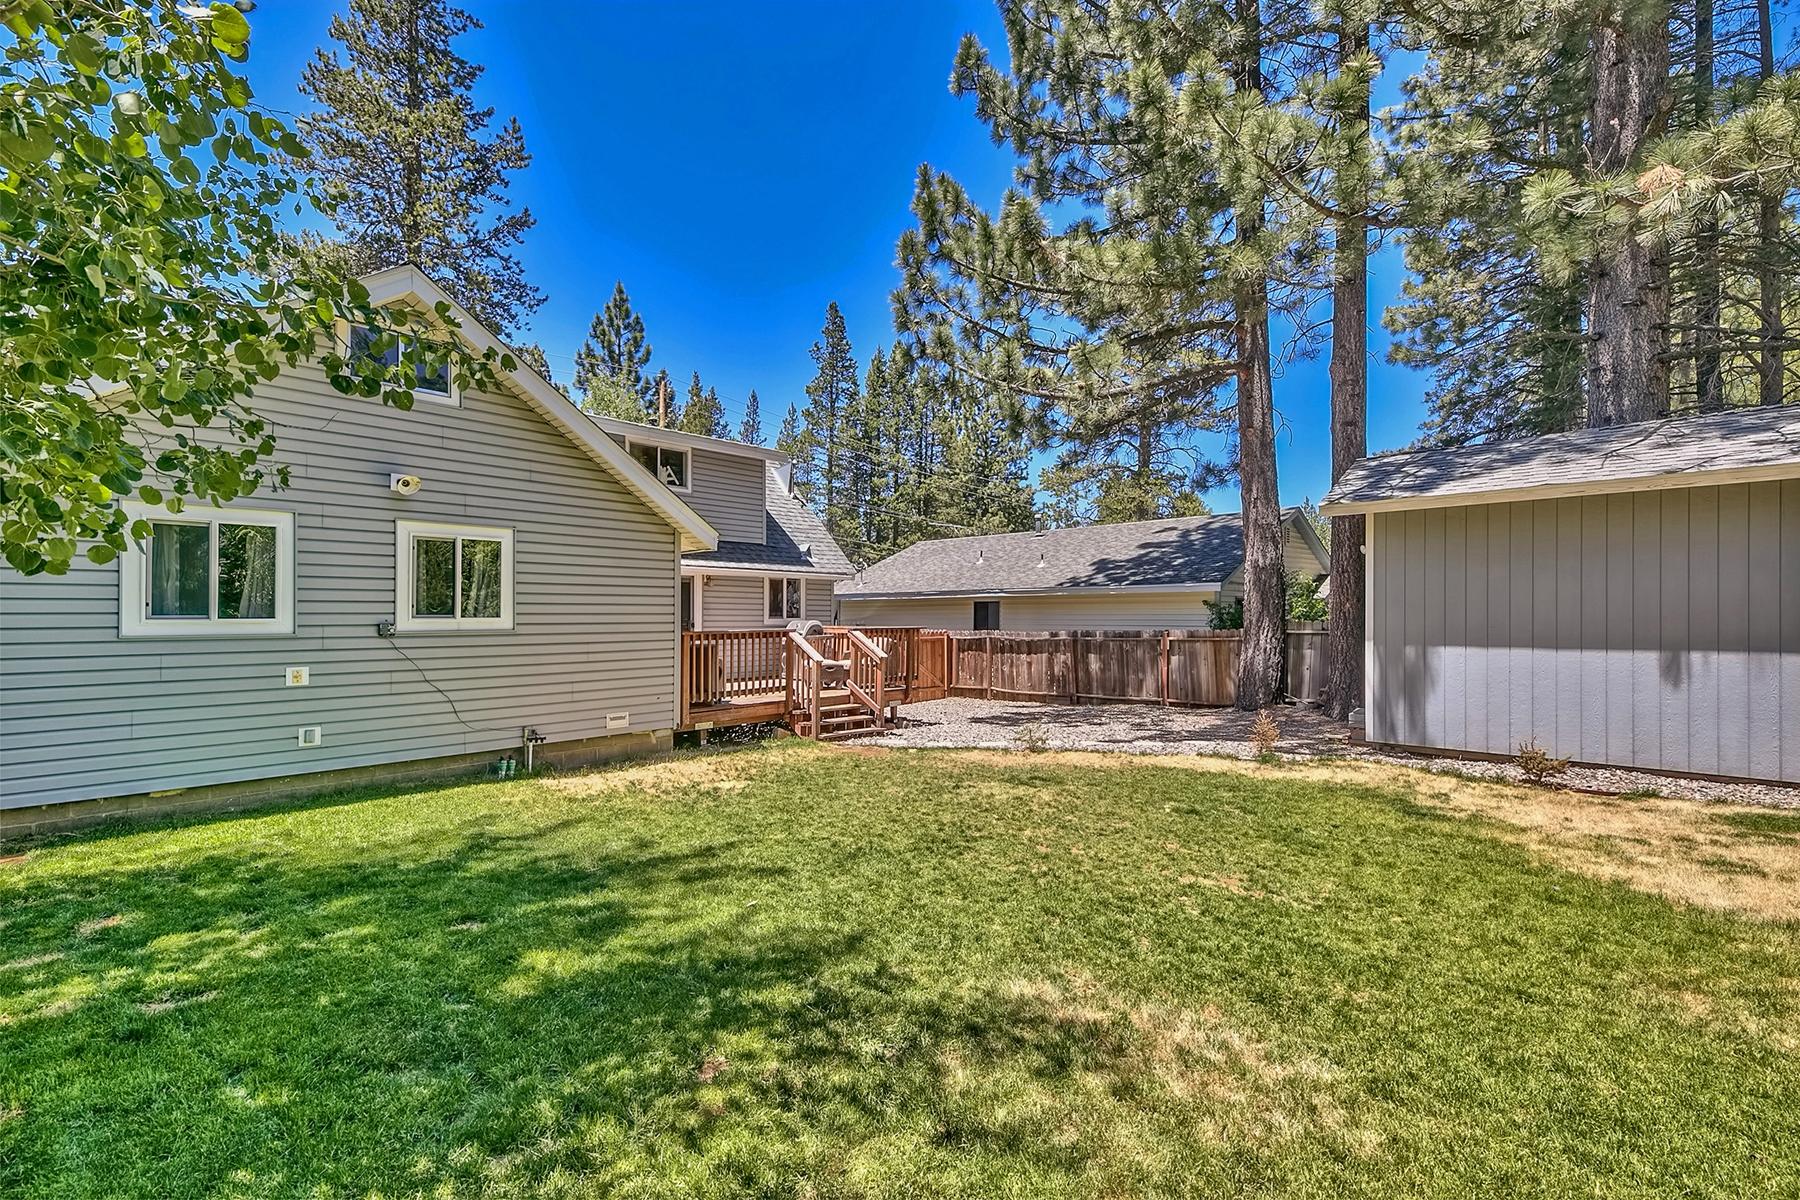 Additional photo for property listing at 2169 Lindenwood, South Lake Tahoe, CA, 96150 2169 Lindenwood Drive South Lake Tahoe, California 96150 United States